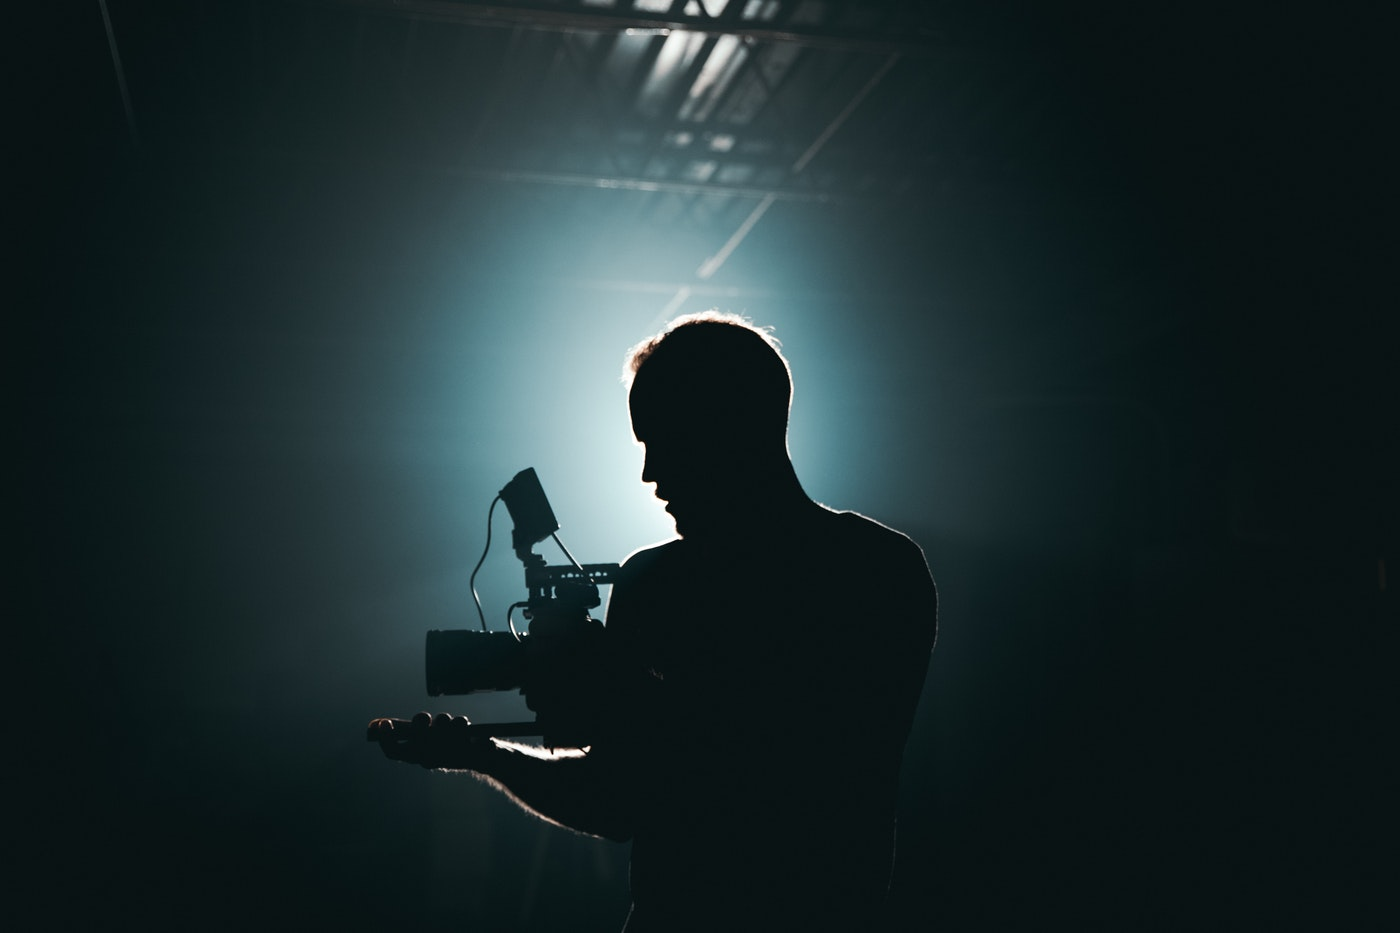 man filming a production video